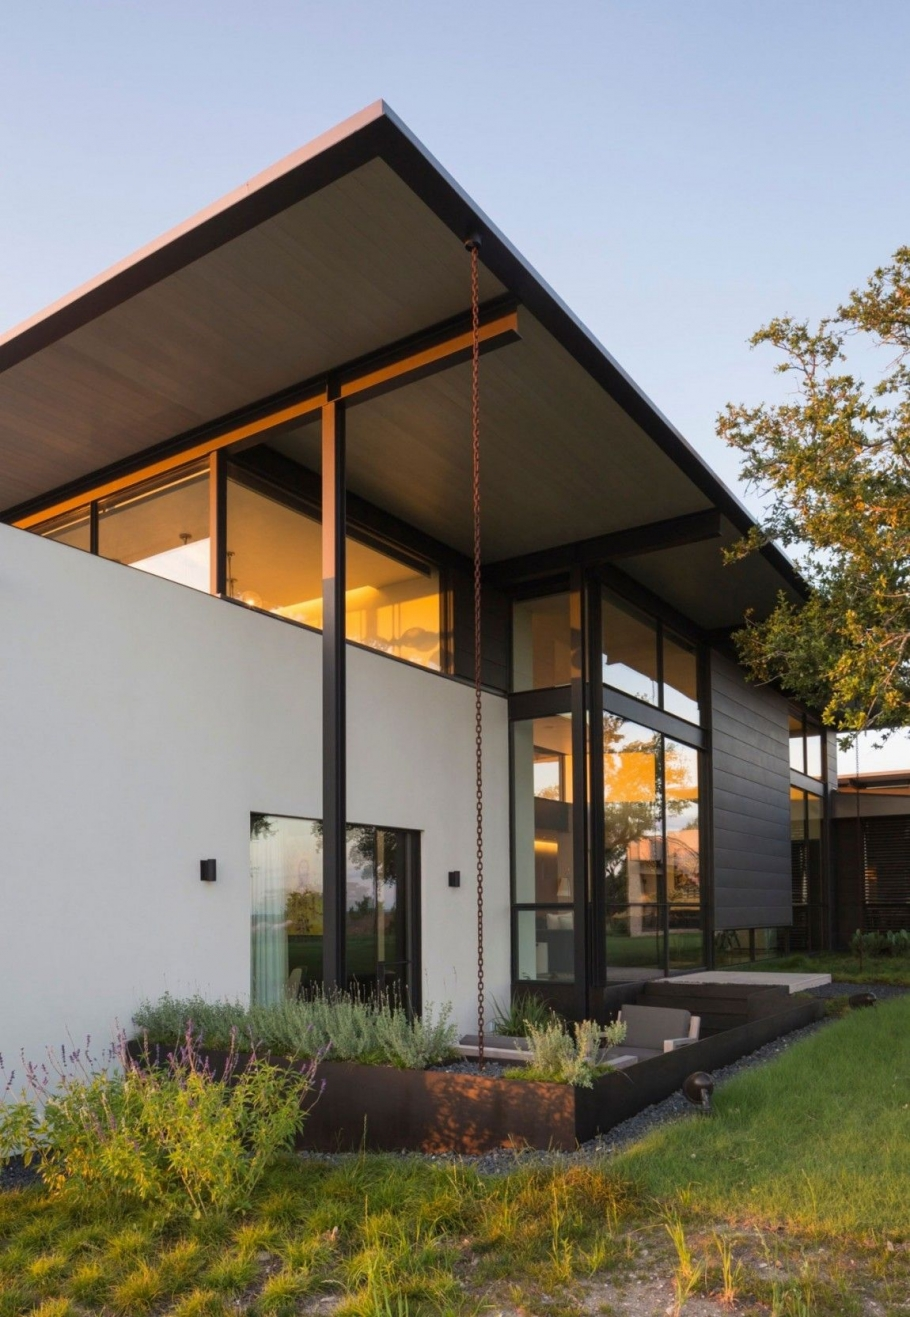 95 Examples Of Amazing Contemporary Flat Roof Design Of A House